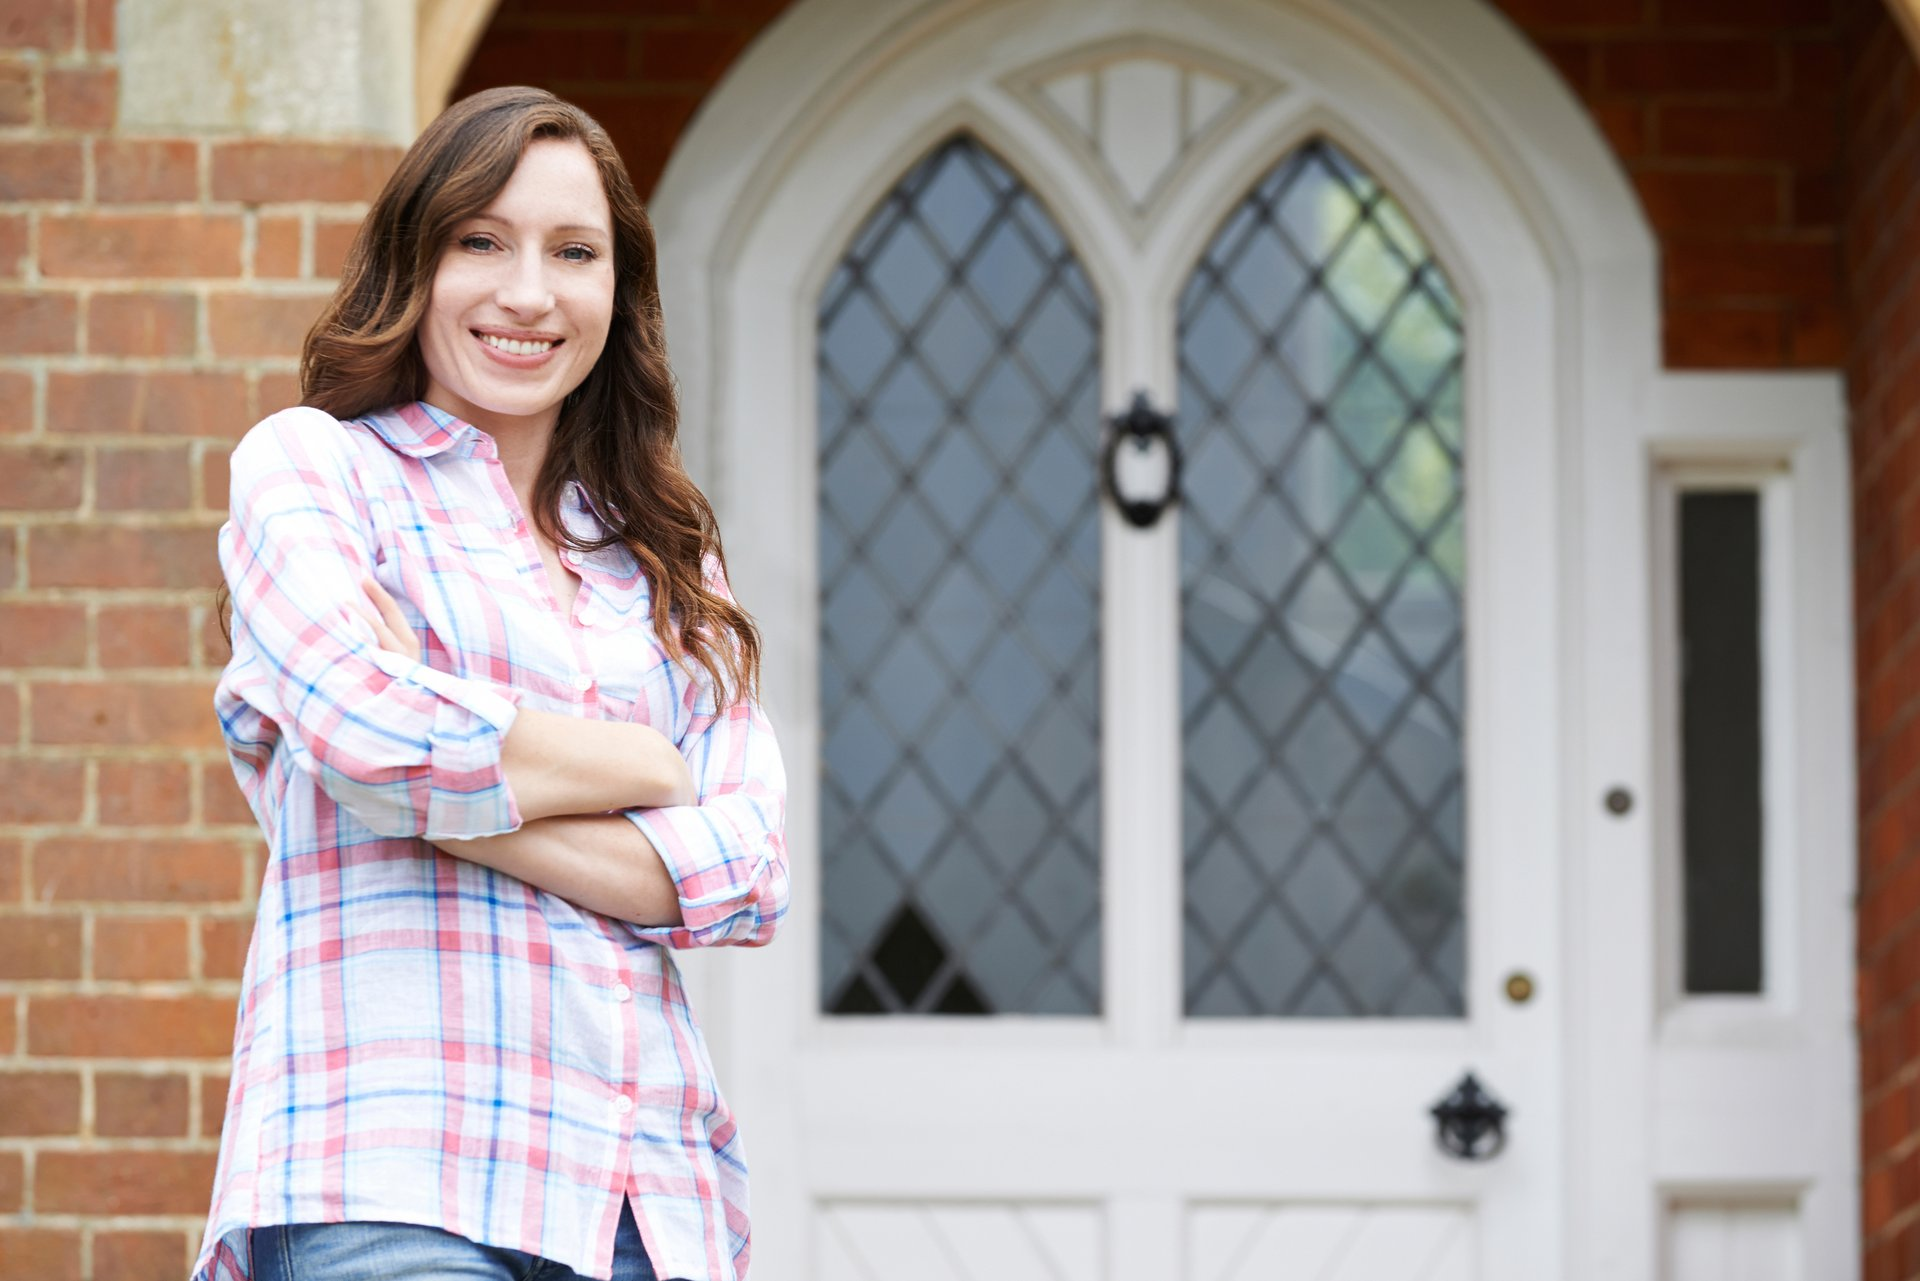 A woman stands outside the front door of her home